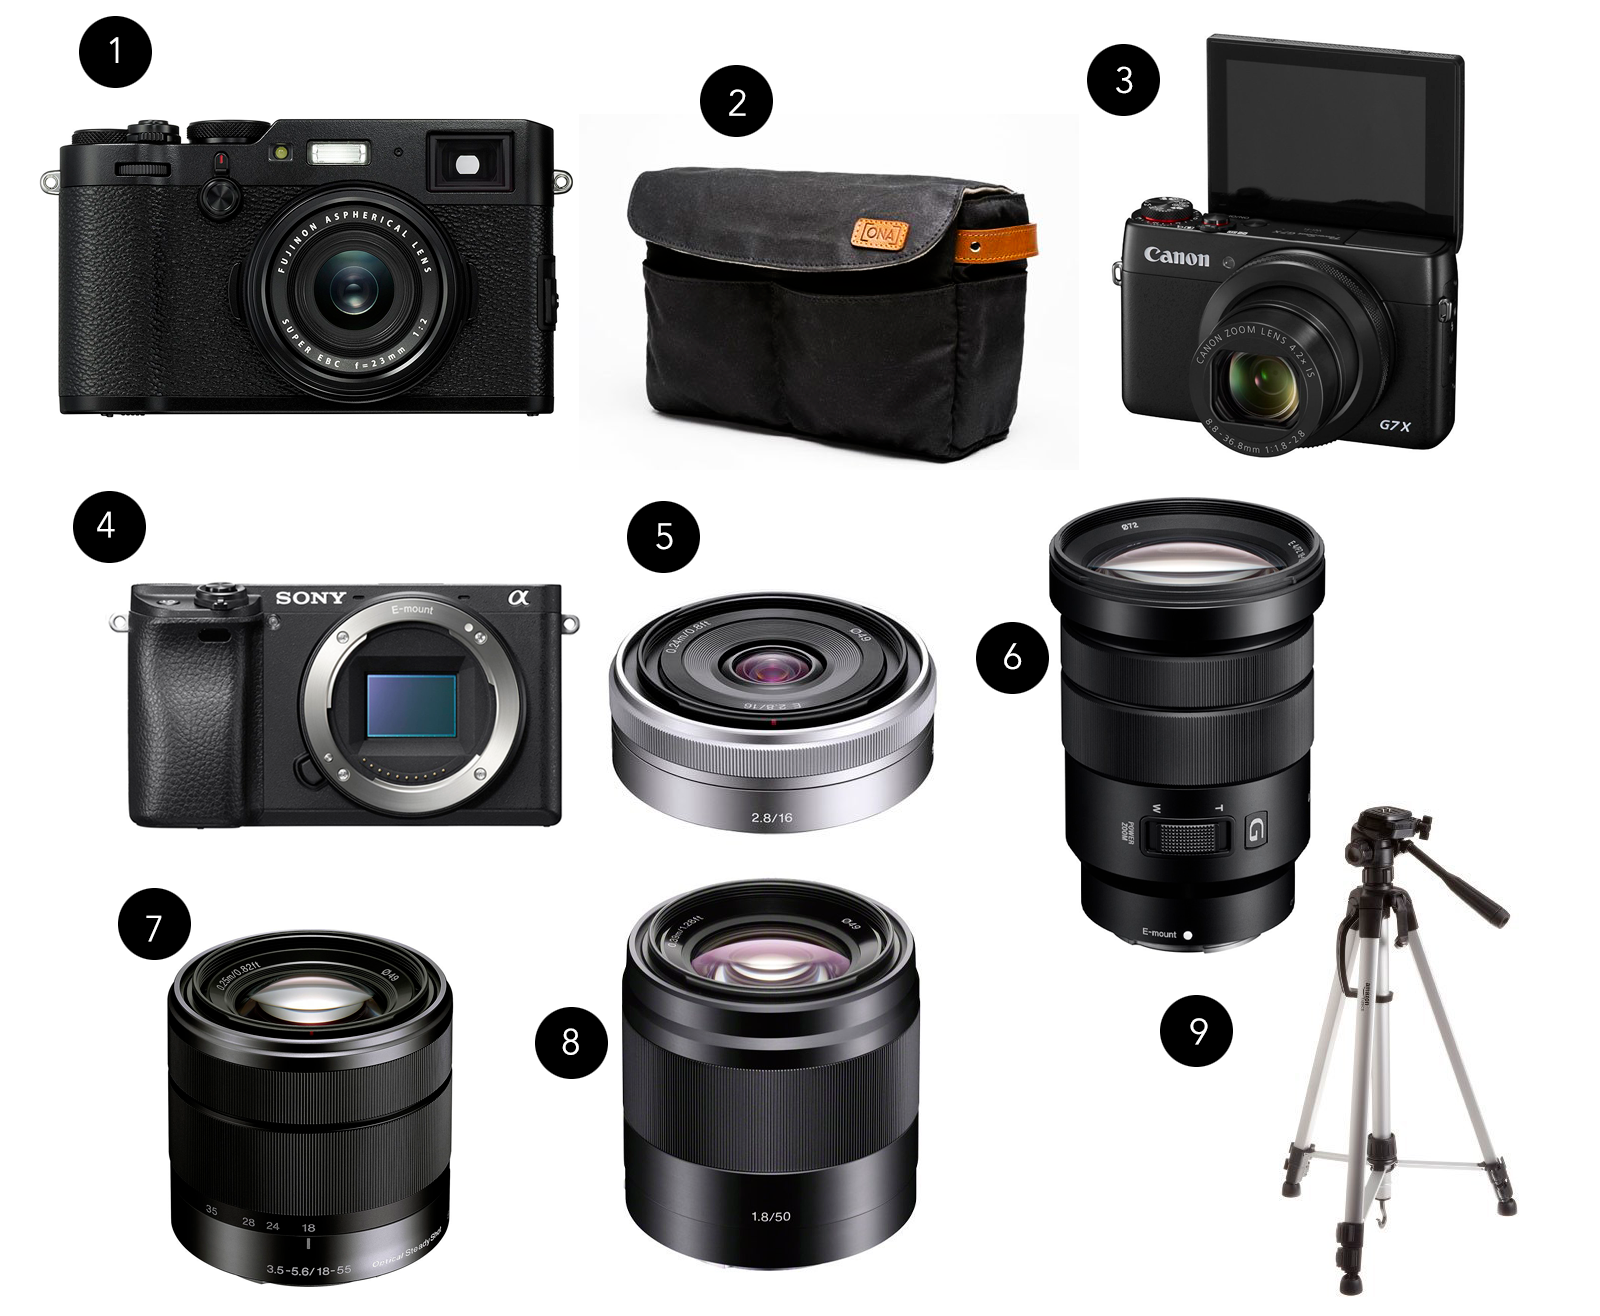 mirrorless camera ideas for travel or daily use